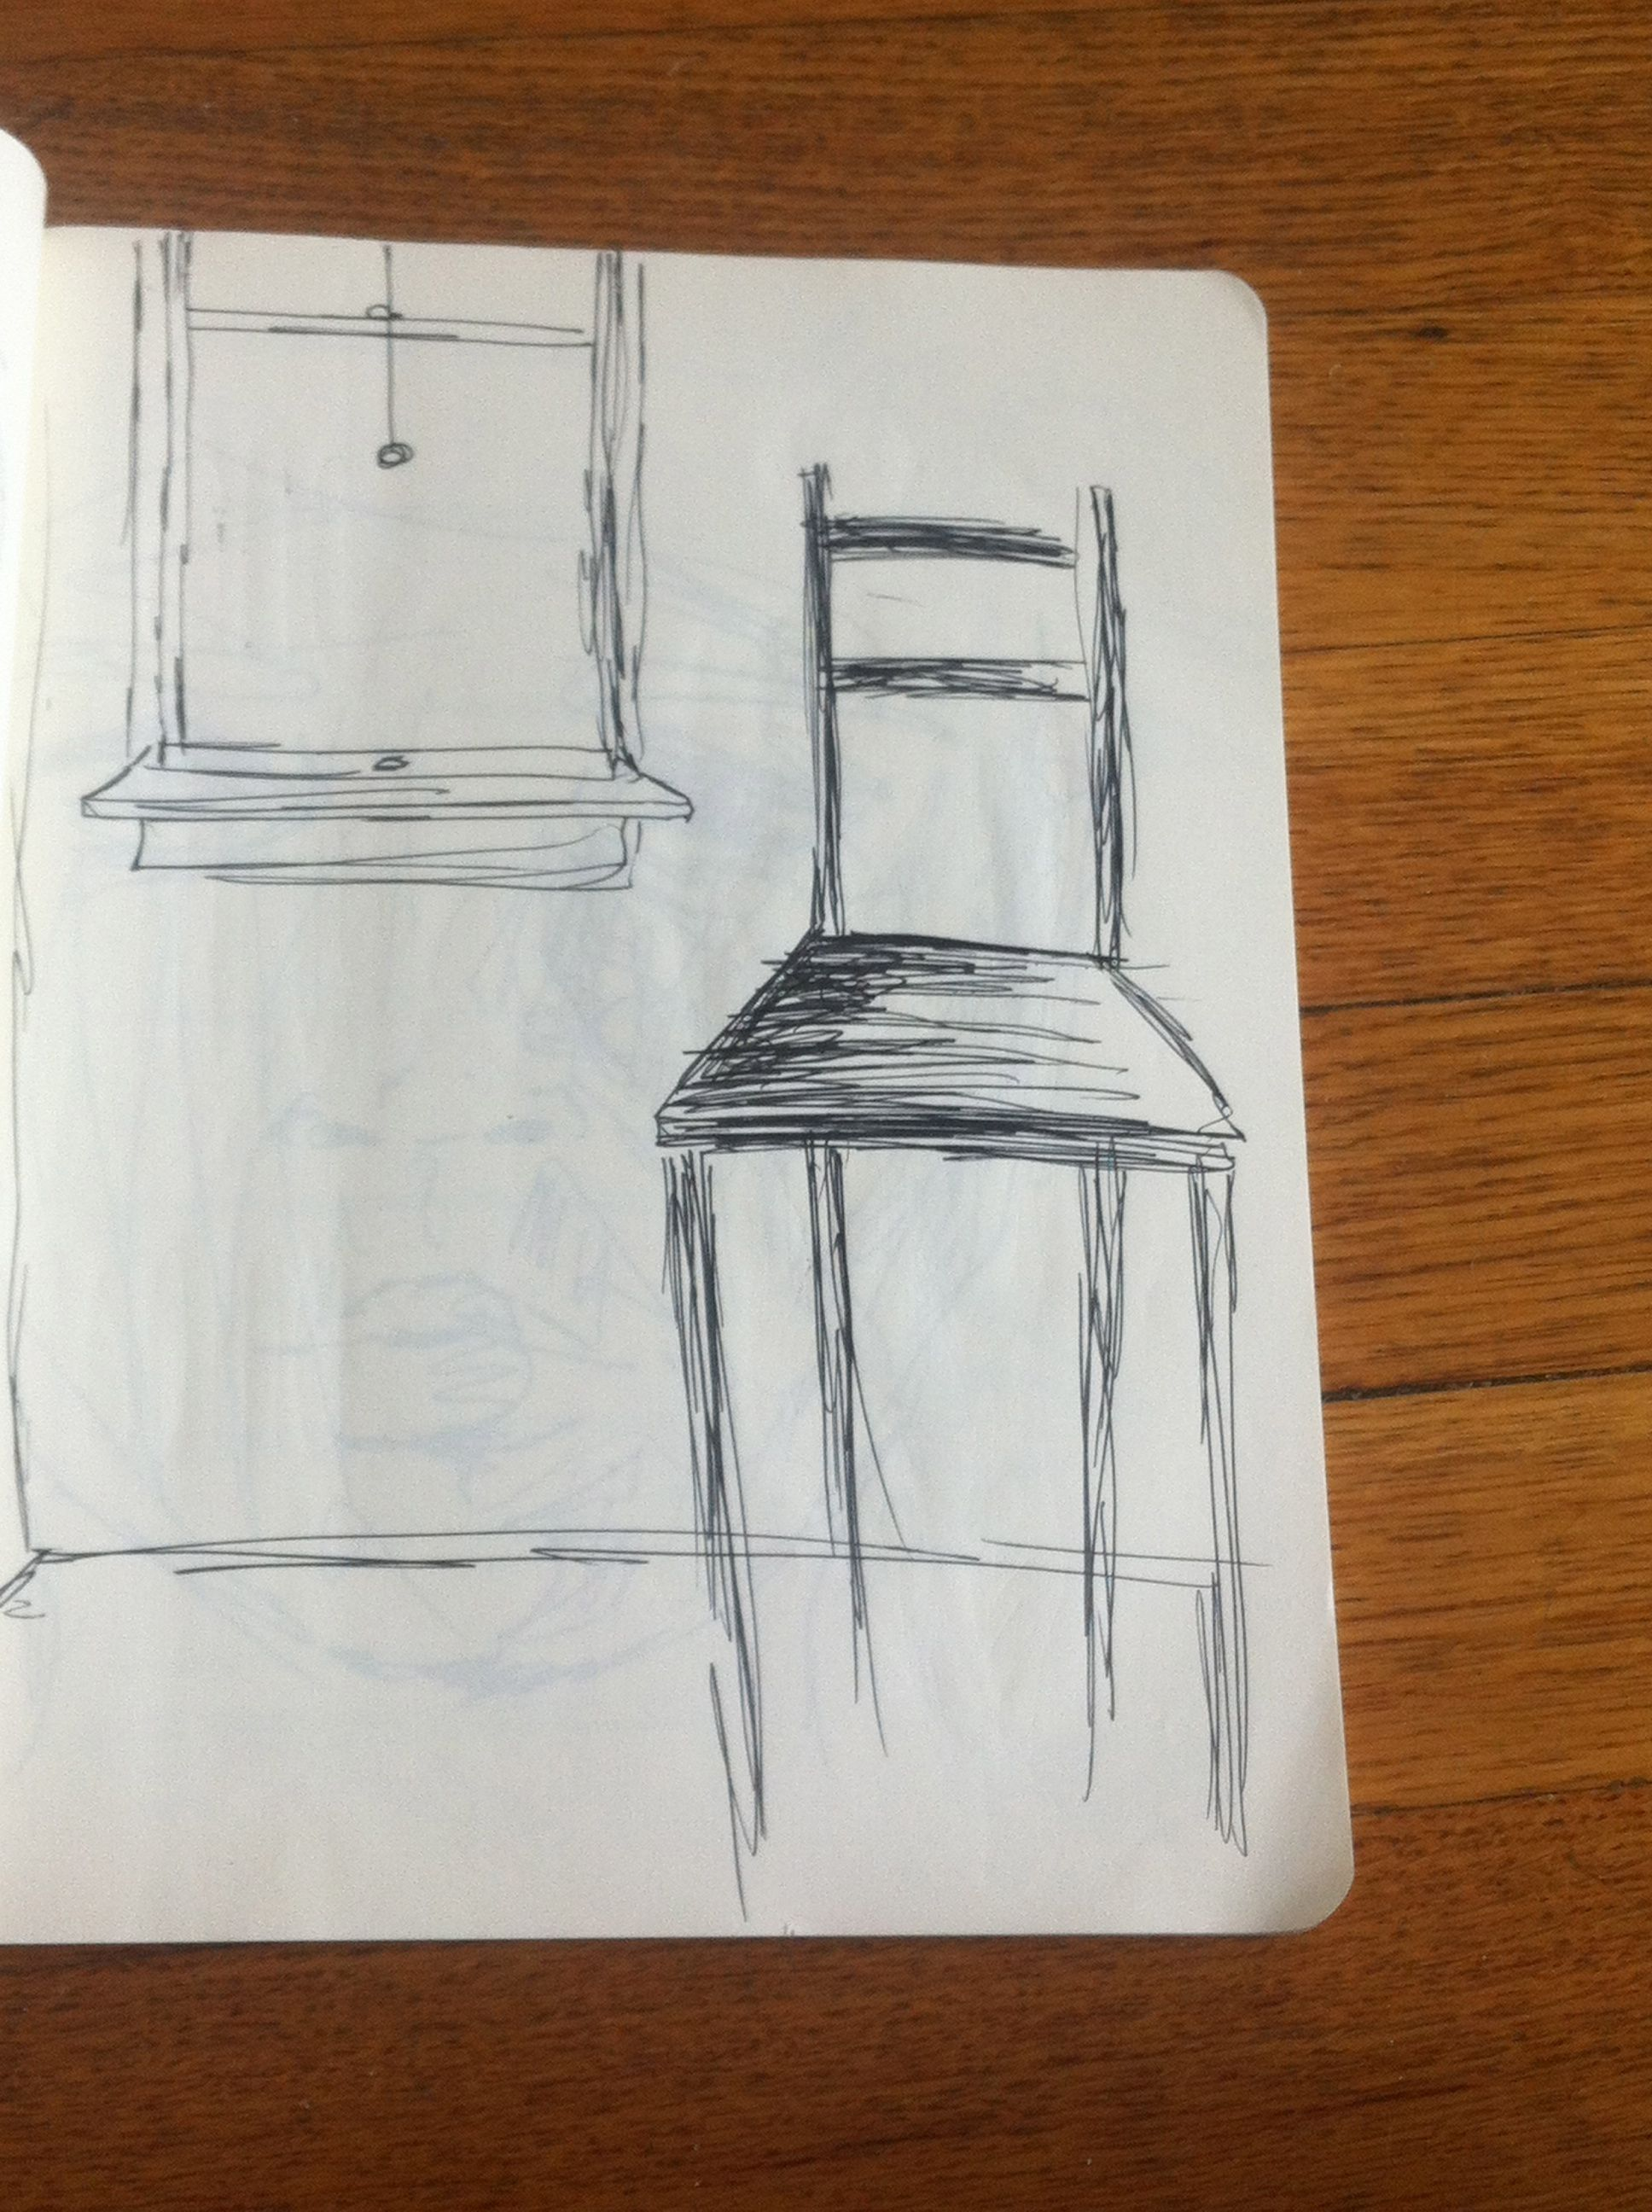 Room Drawing Pencil: Drawing. Chair. Room. Window.